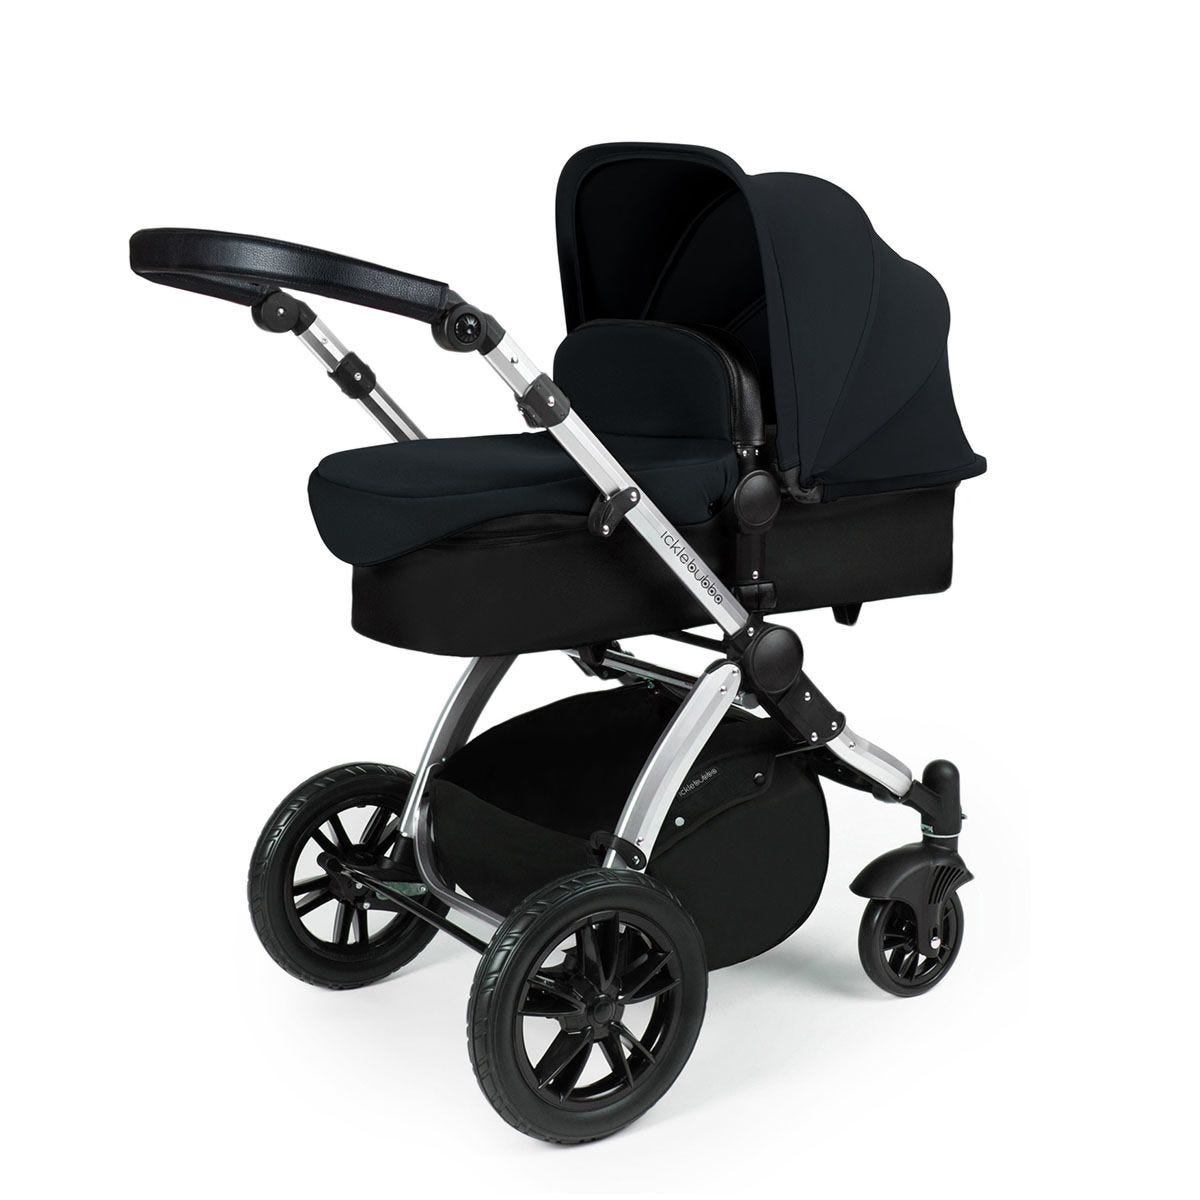 Ickle Bubba Stomp V3 2 in 1 Pushchair - Black on Silver with Black Handles